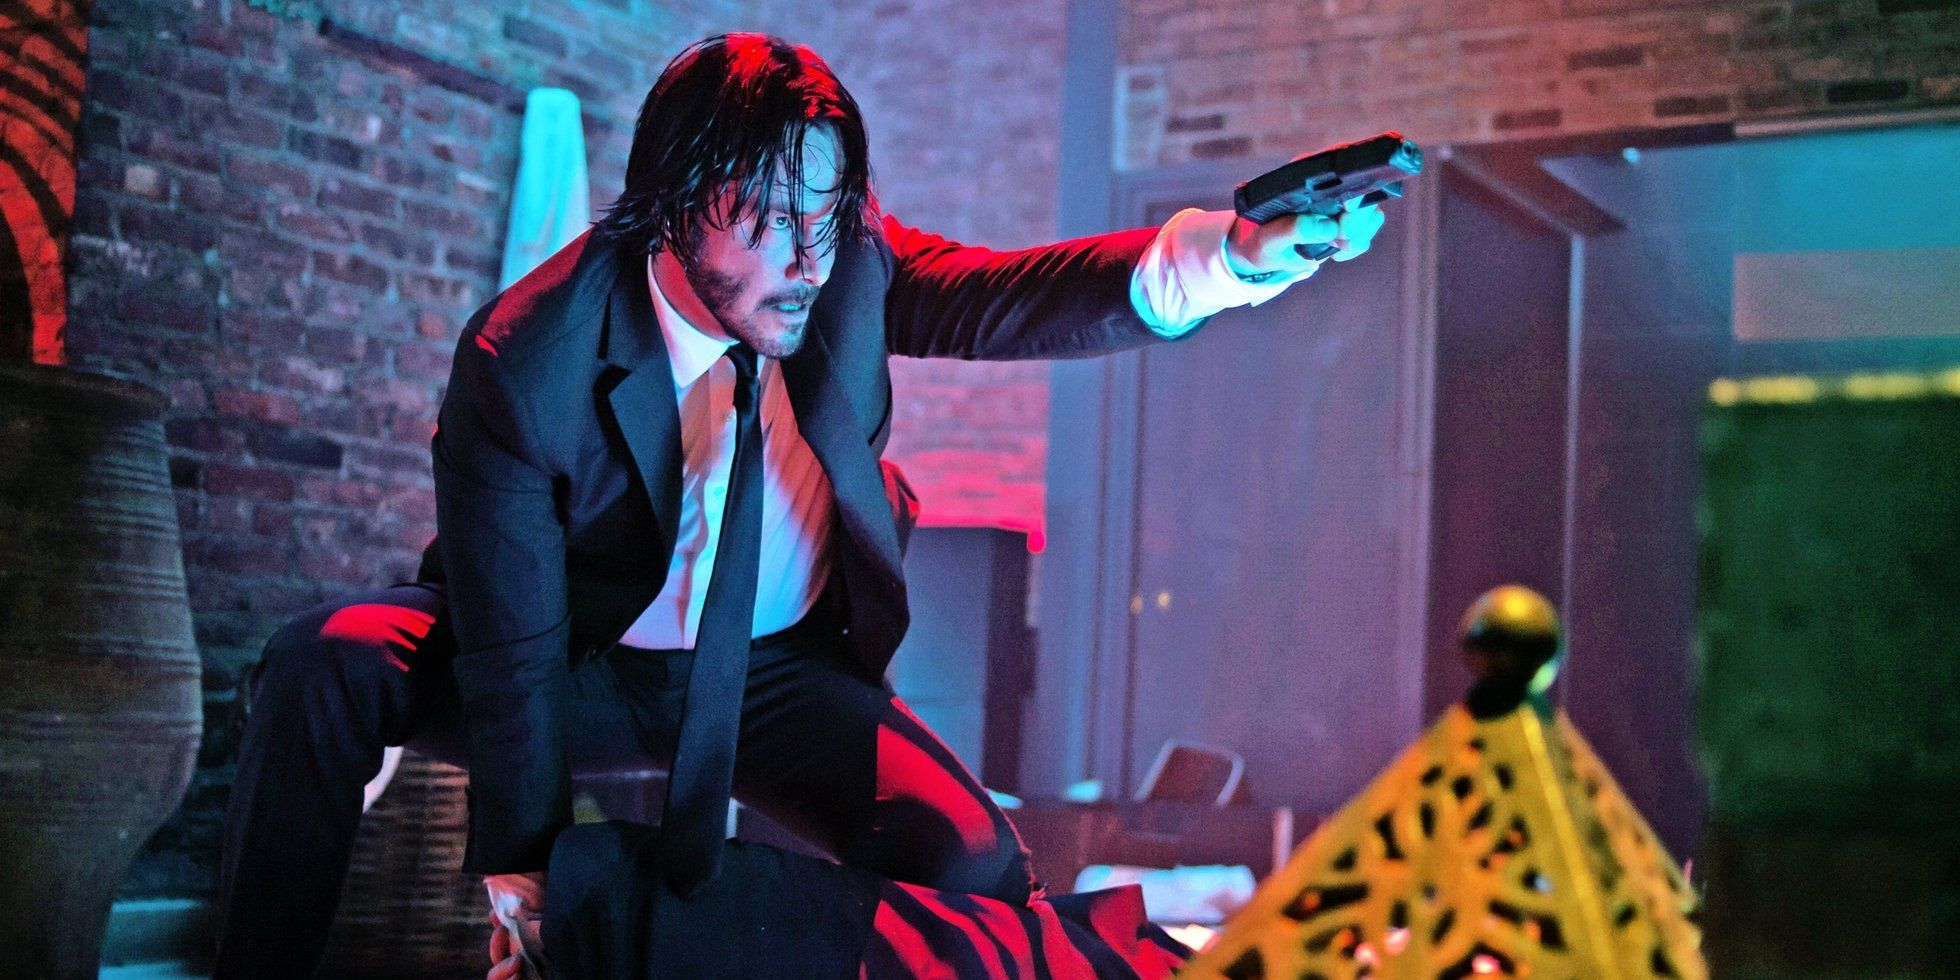 John Wick: Why The Series Should End After Chapter 5 (& 5 Reasons It Should Keep Going)